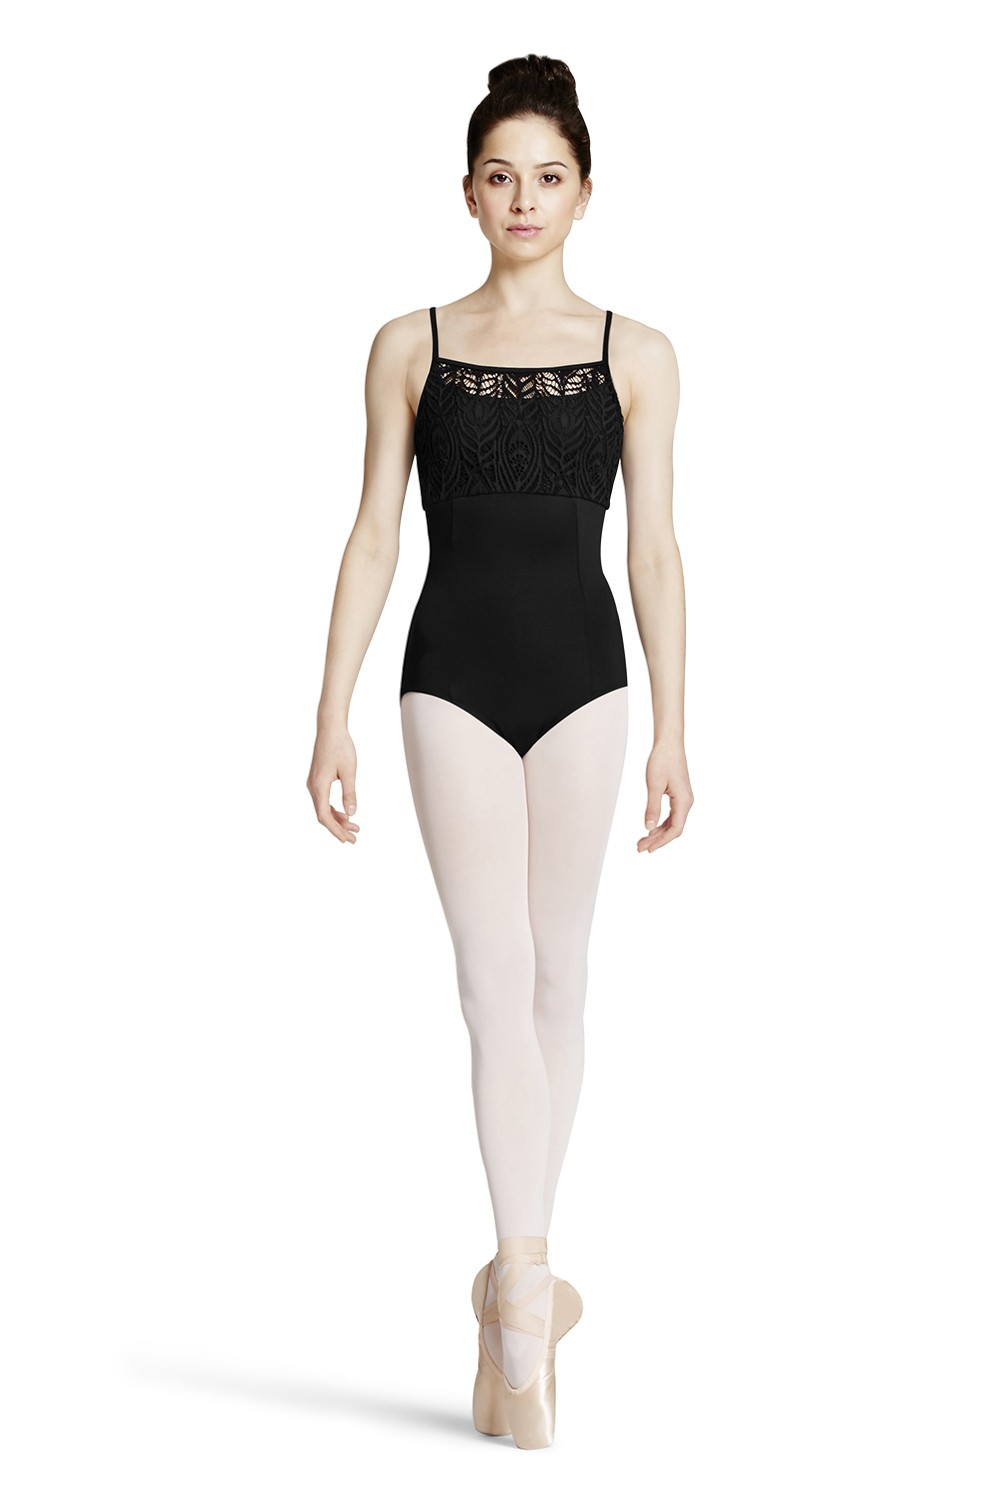 Body A Spallina Sottile Peacock Plume Women's Dance Leotards